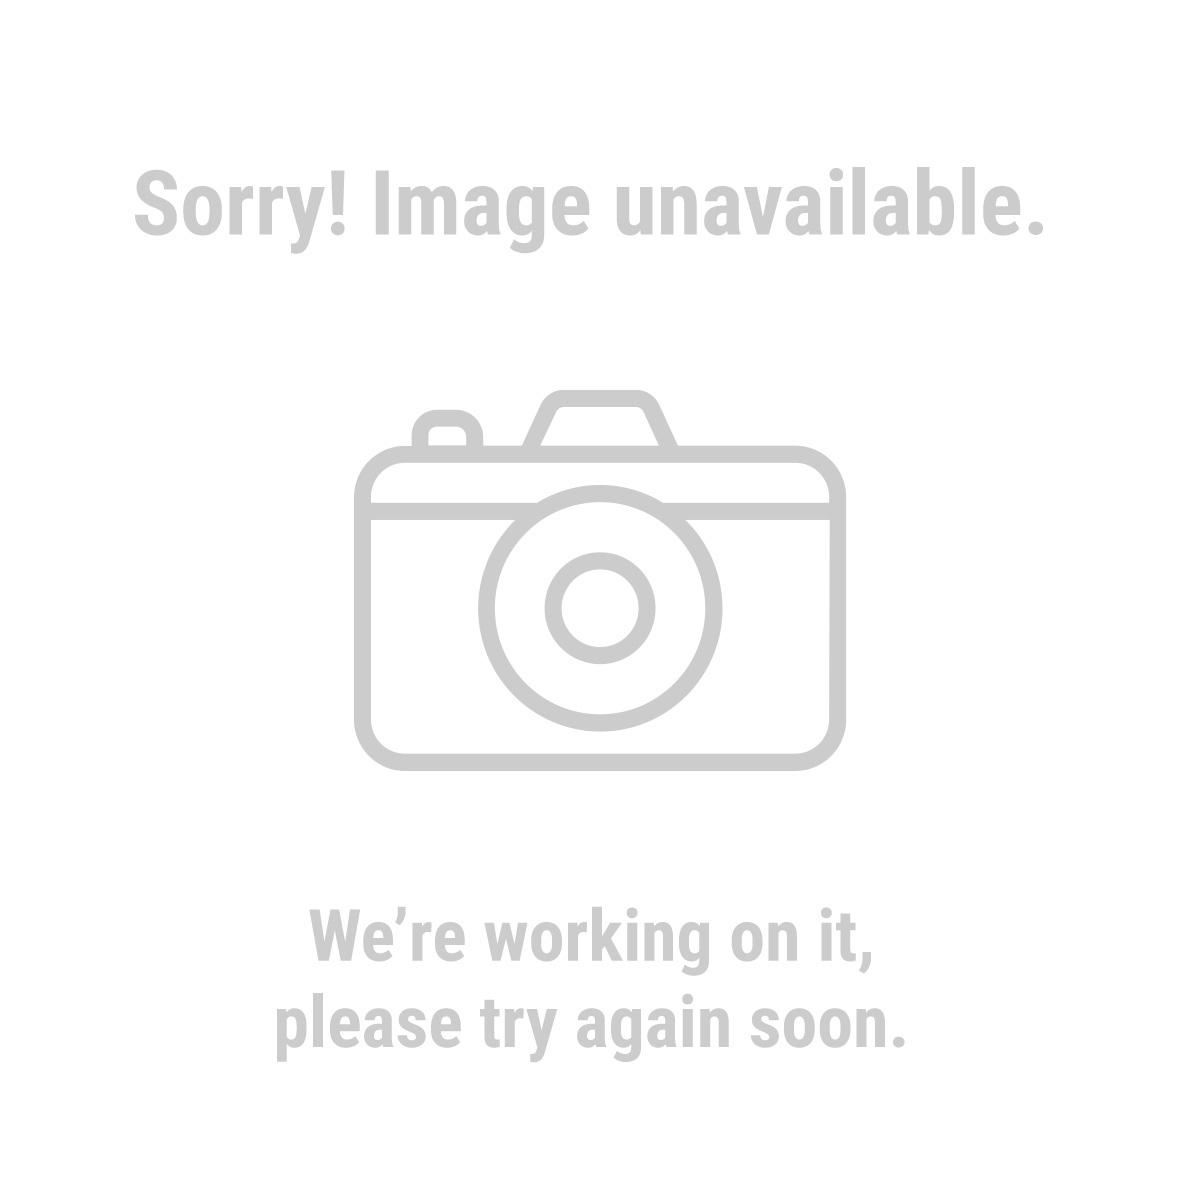 Goop 35468 10-1/2 Oz. Multipurpose Hand Cleaner